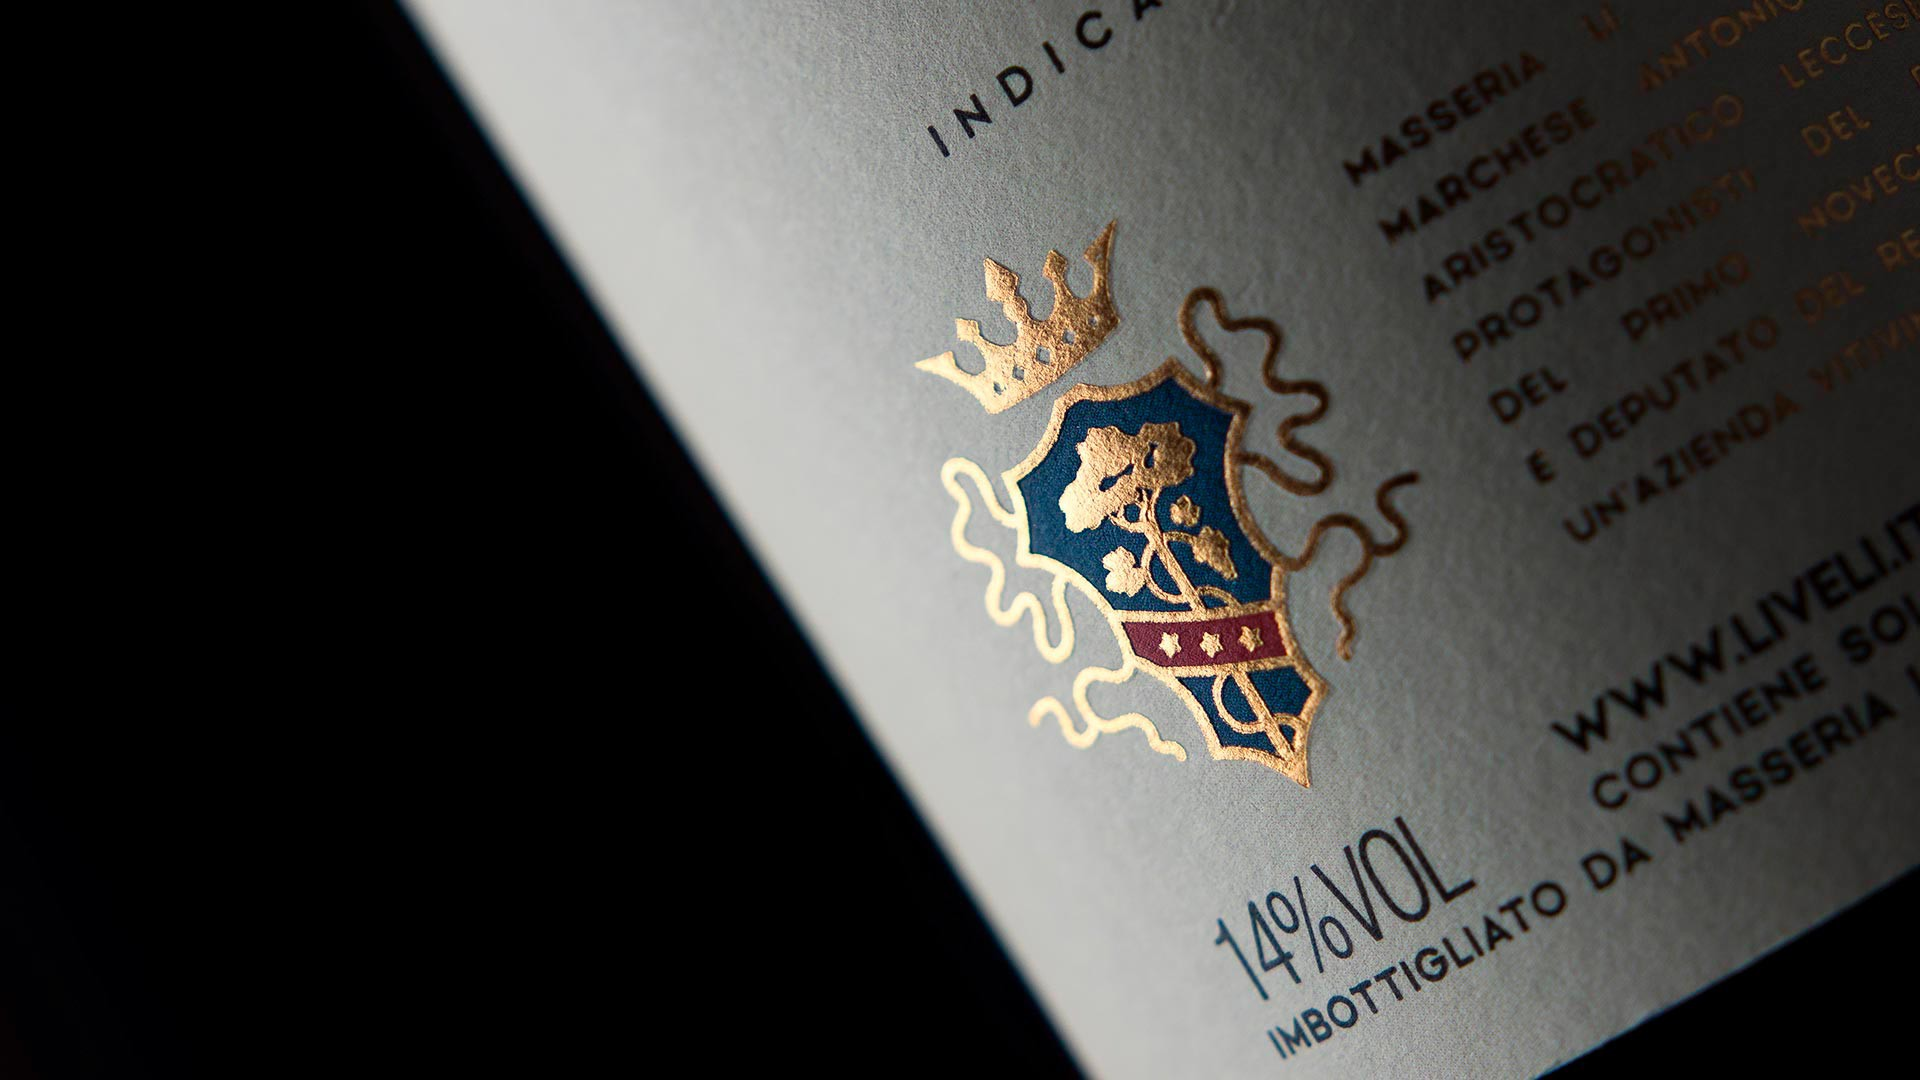 MAD13 Masseria Li Veli Orion macro 1920 - Label Design Etichette vini Masseria Li Veli